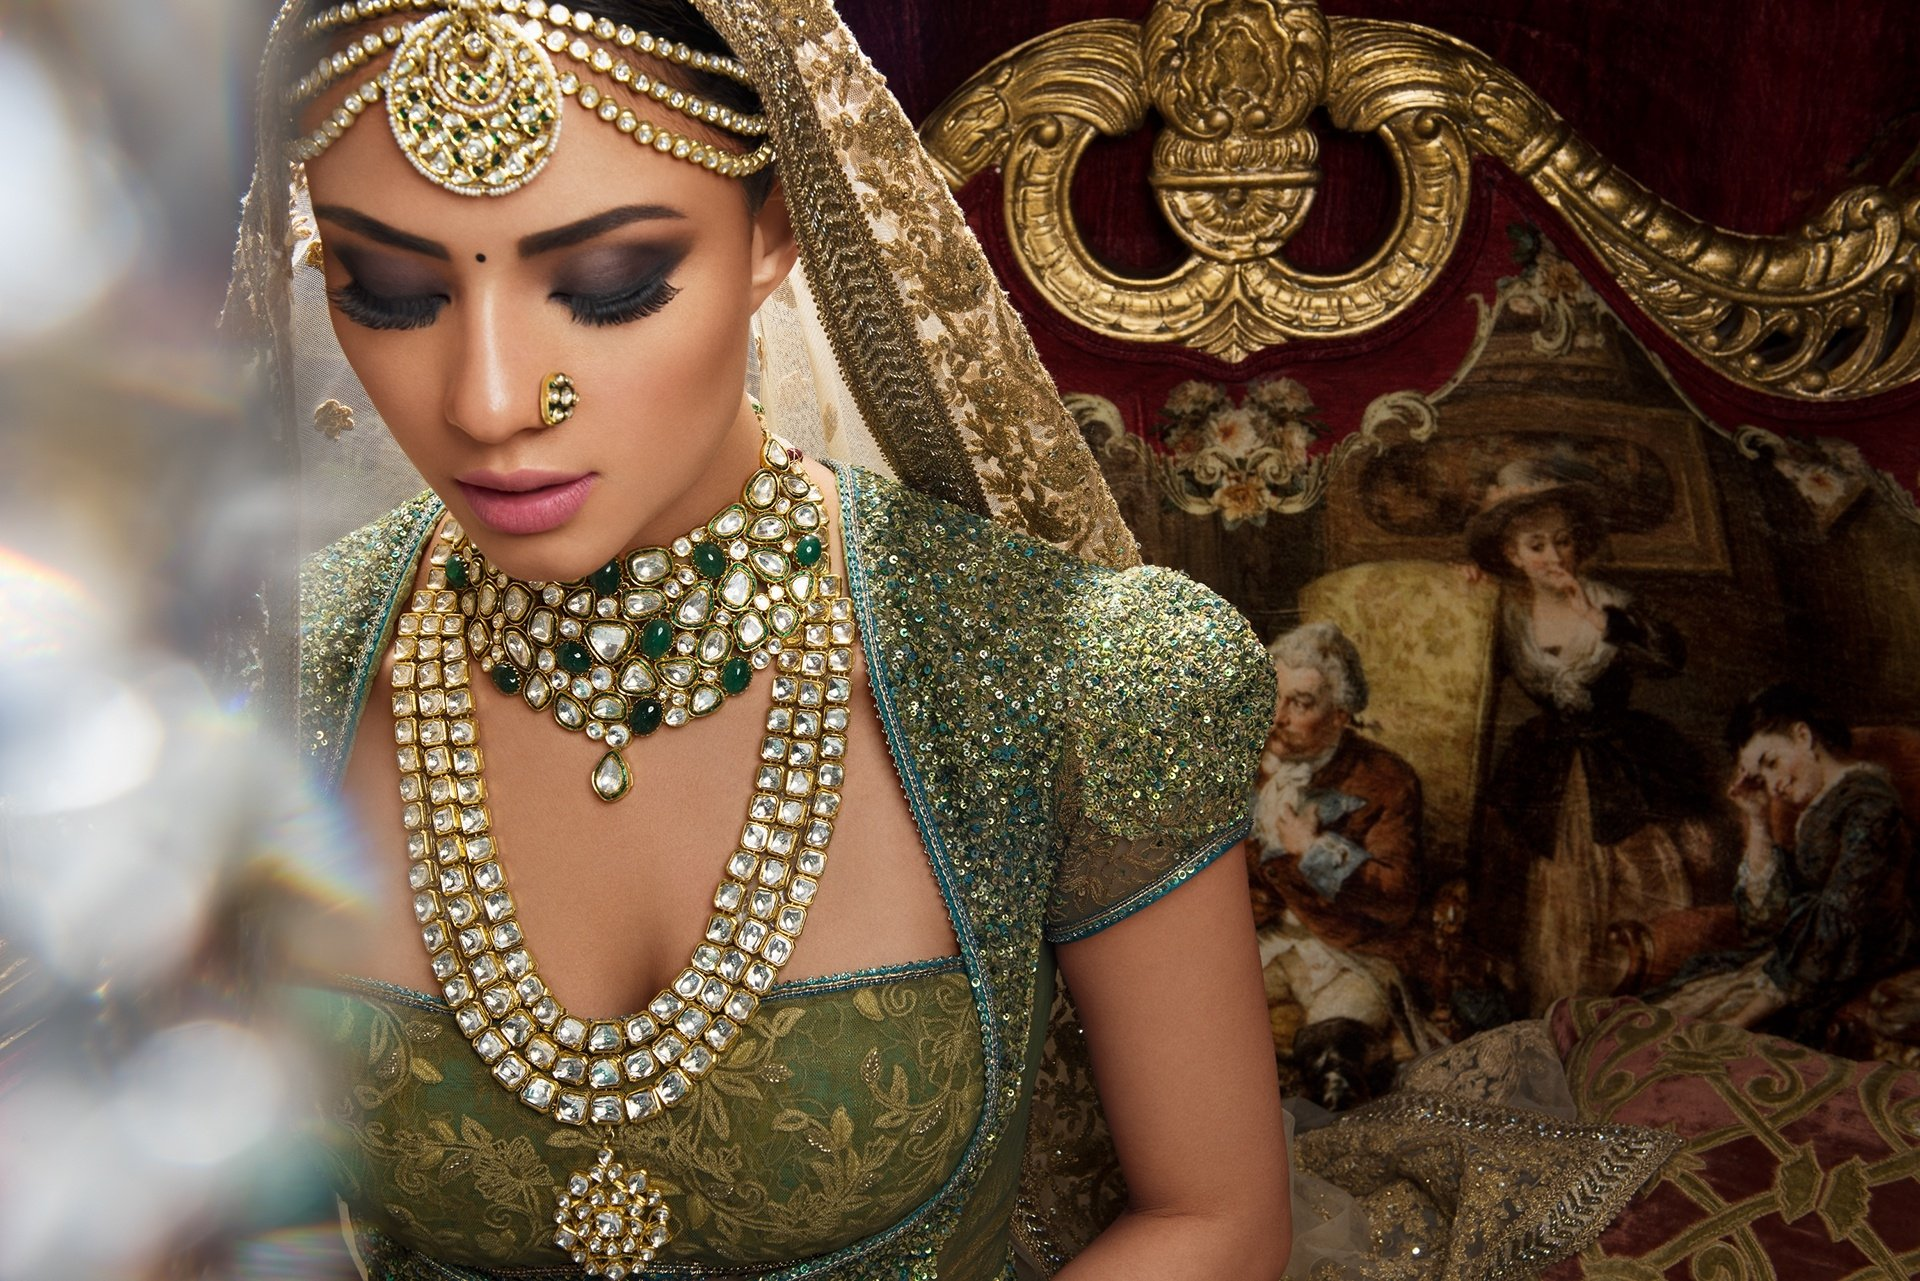 Bride Full HD Wallpaper and Background Image | 1920x1281 | ID:853182